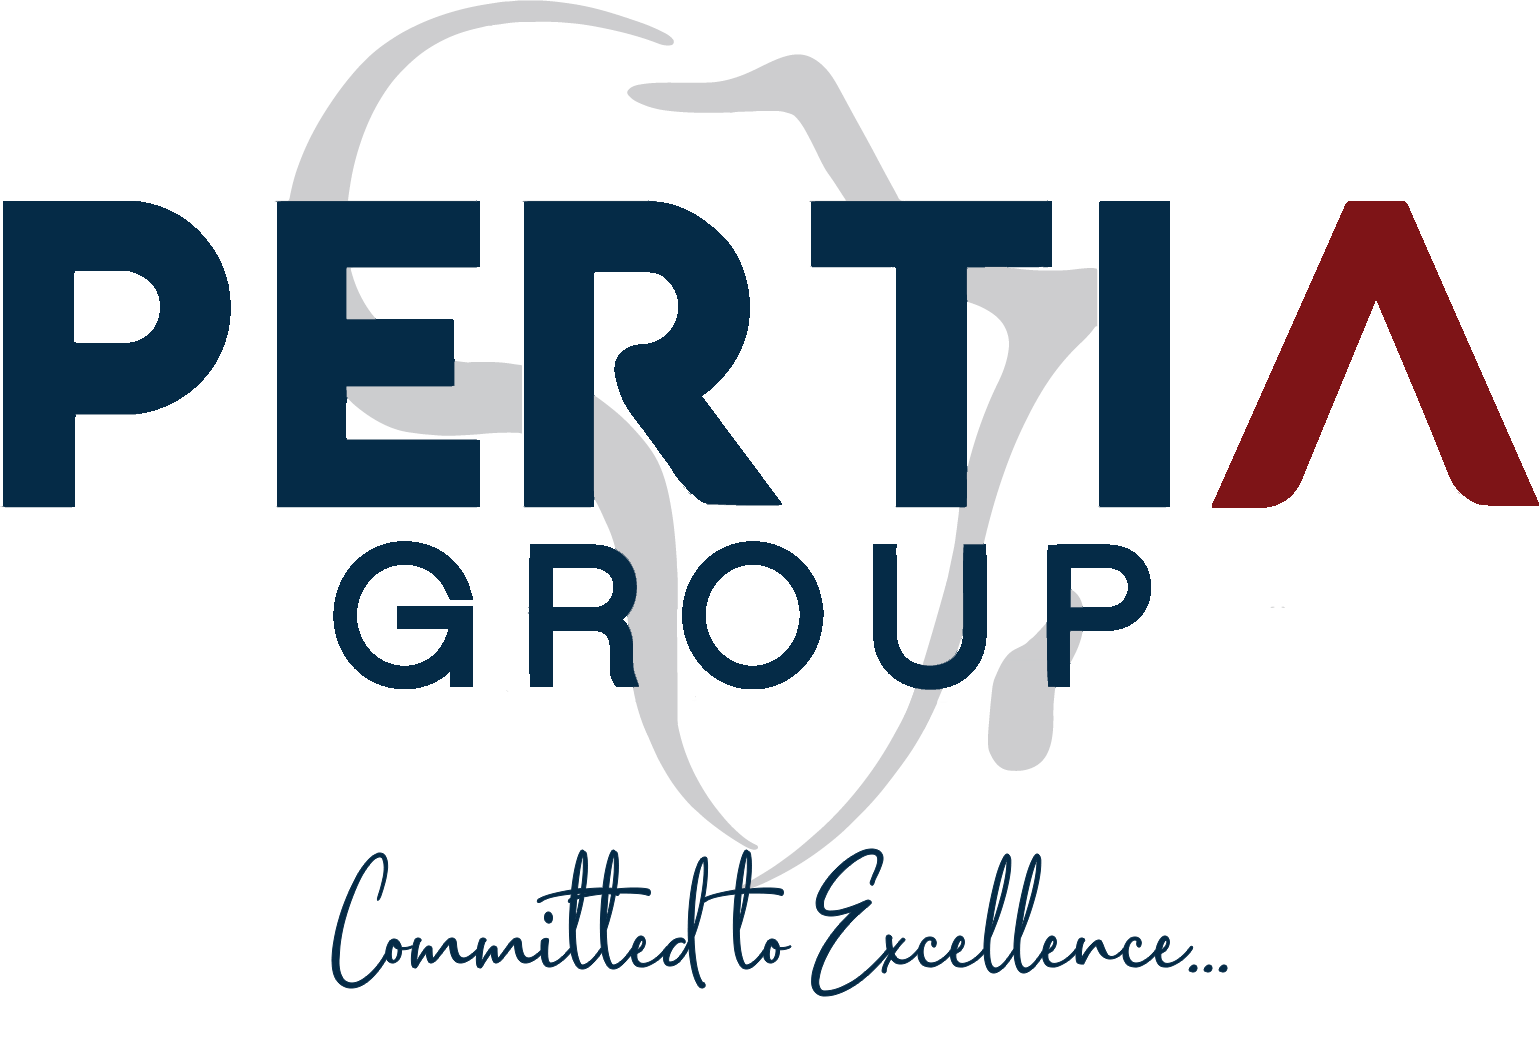 pertia group